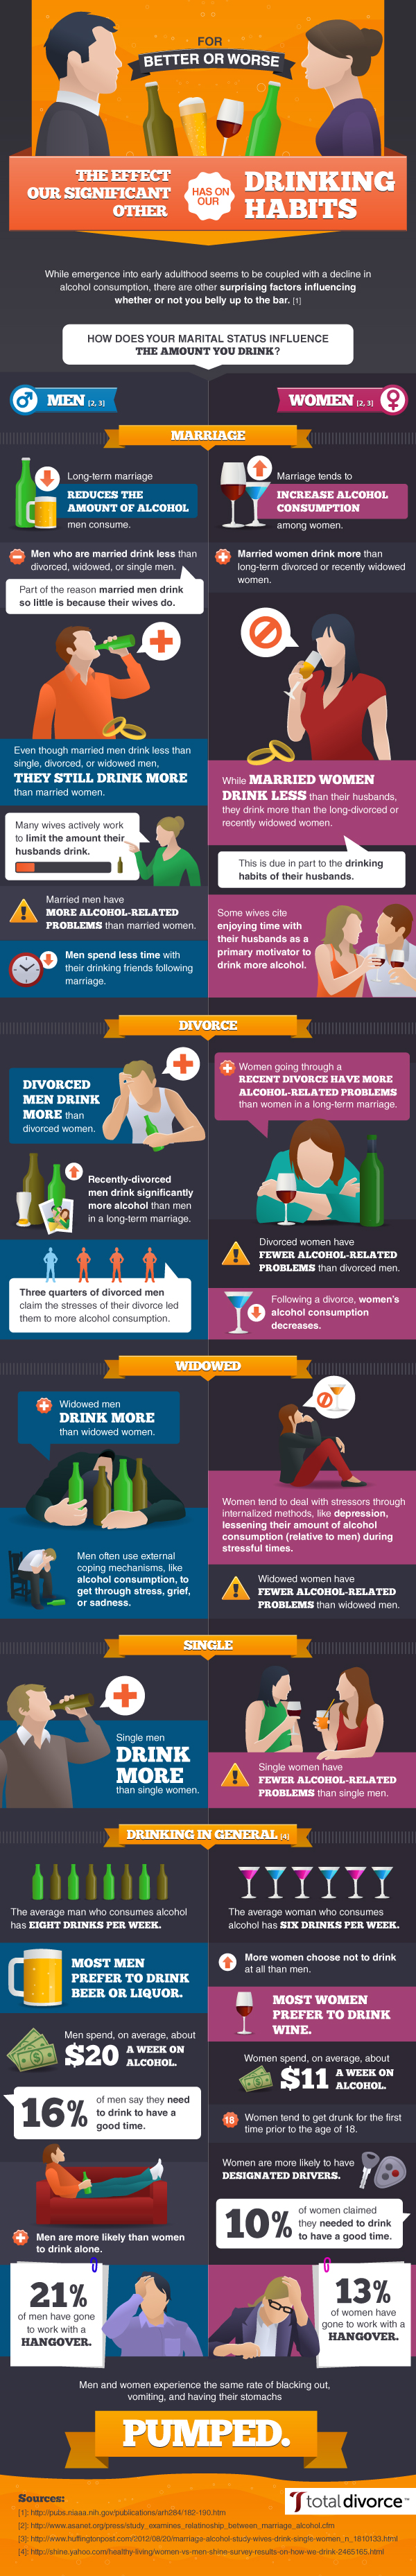 the-effect-our-significant-other-has-on-our-drinking-habits